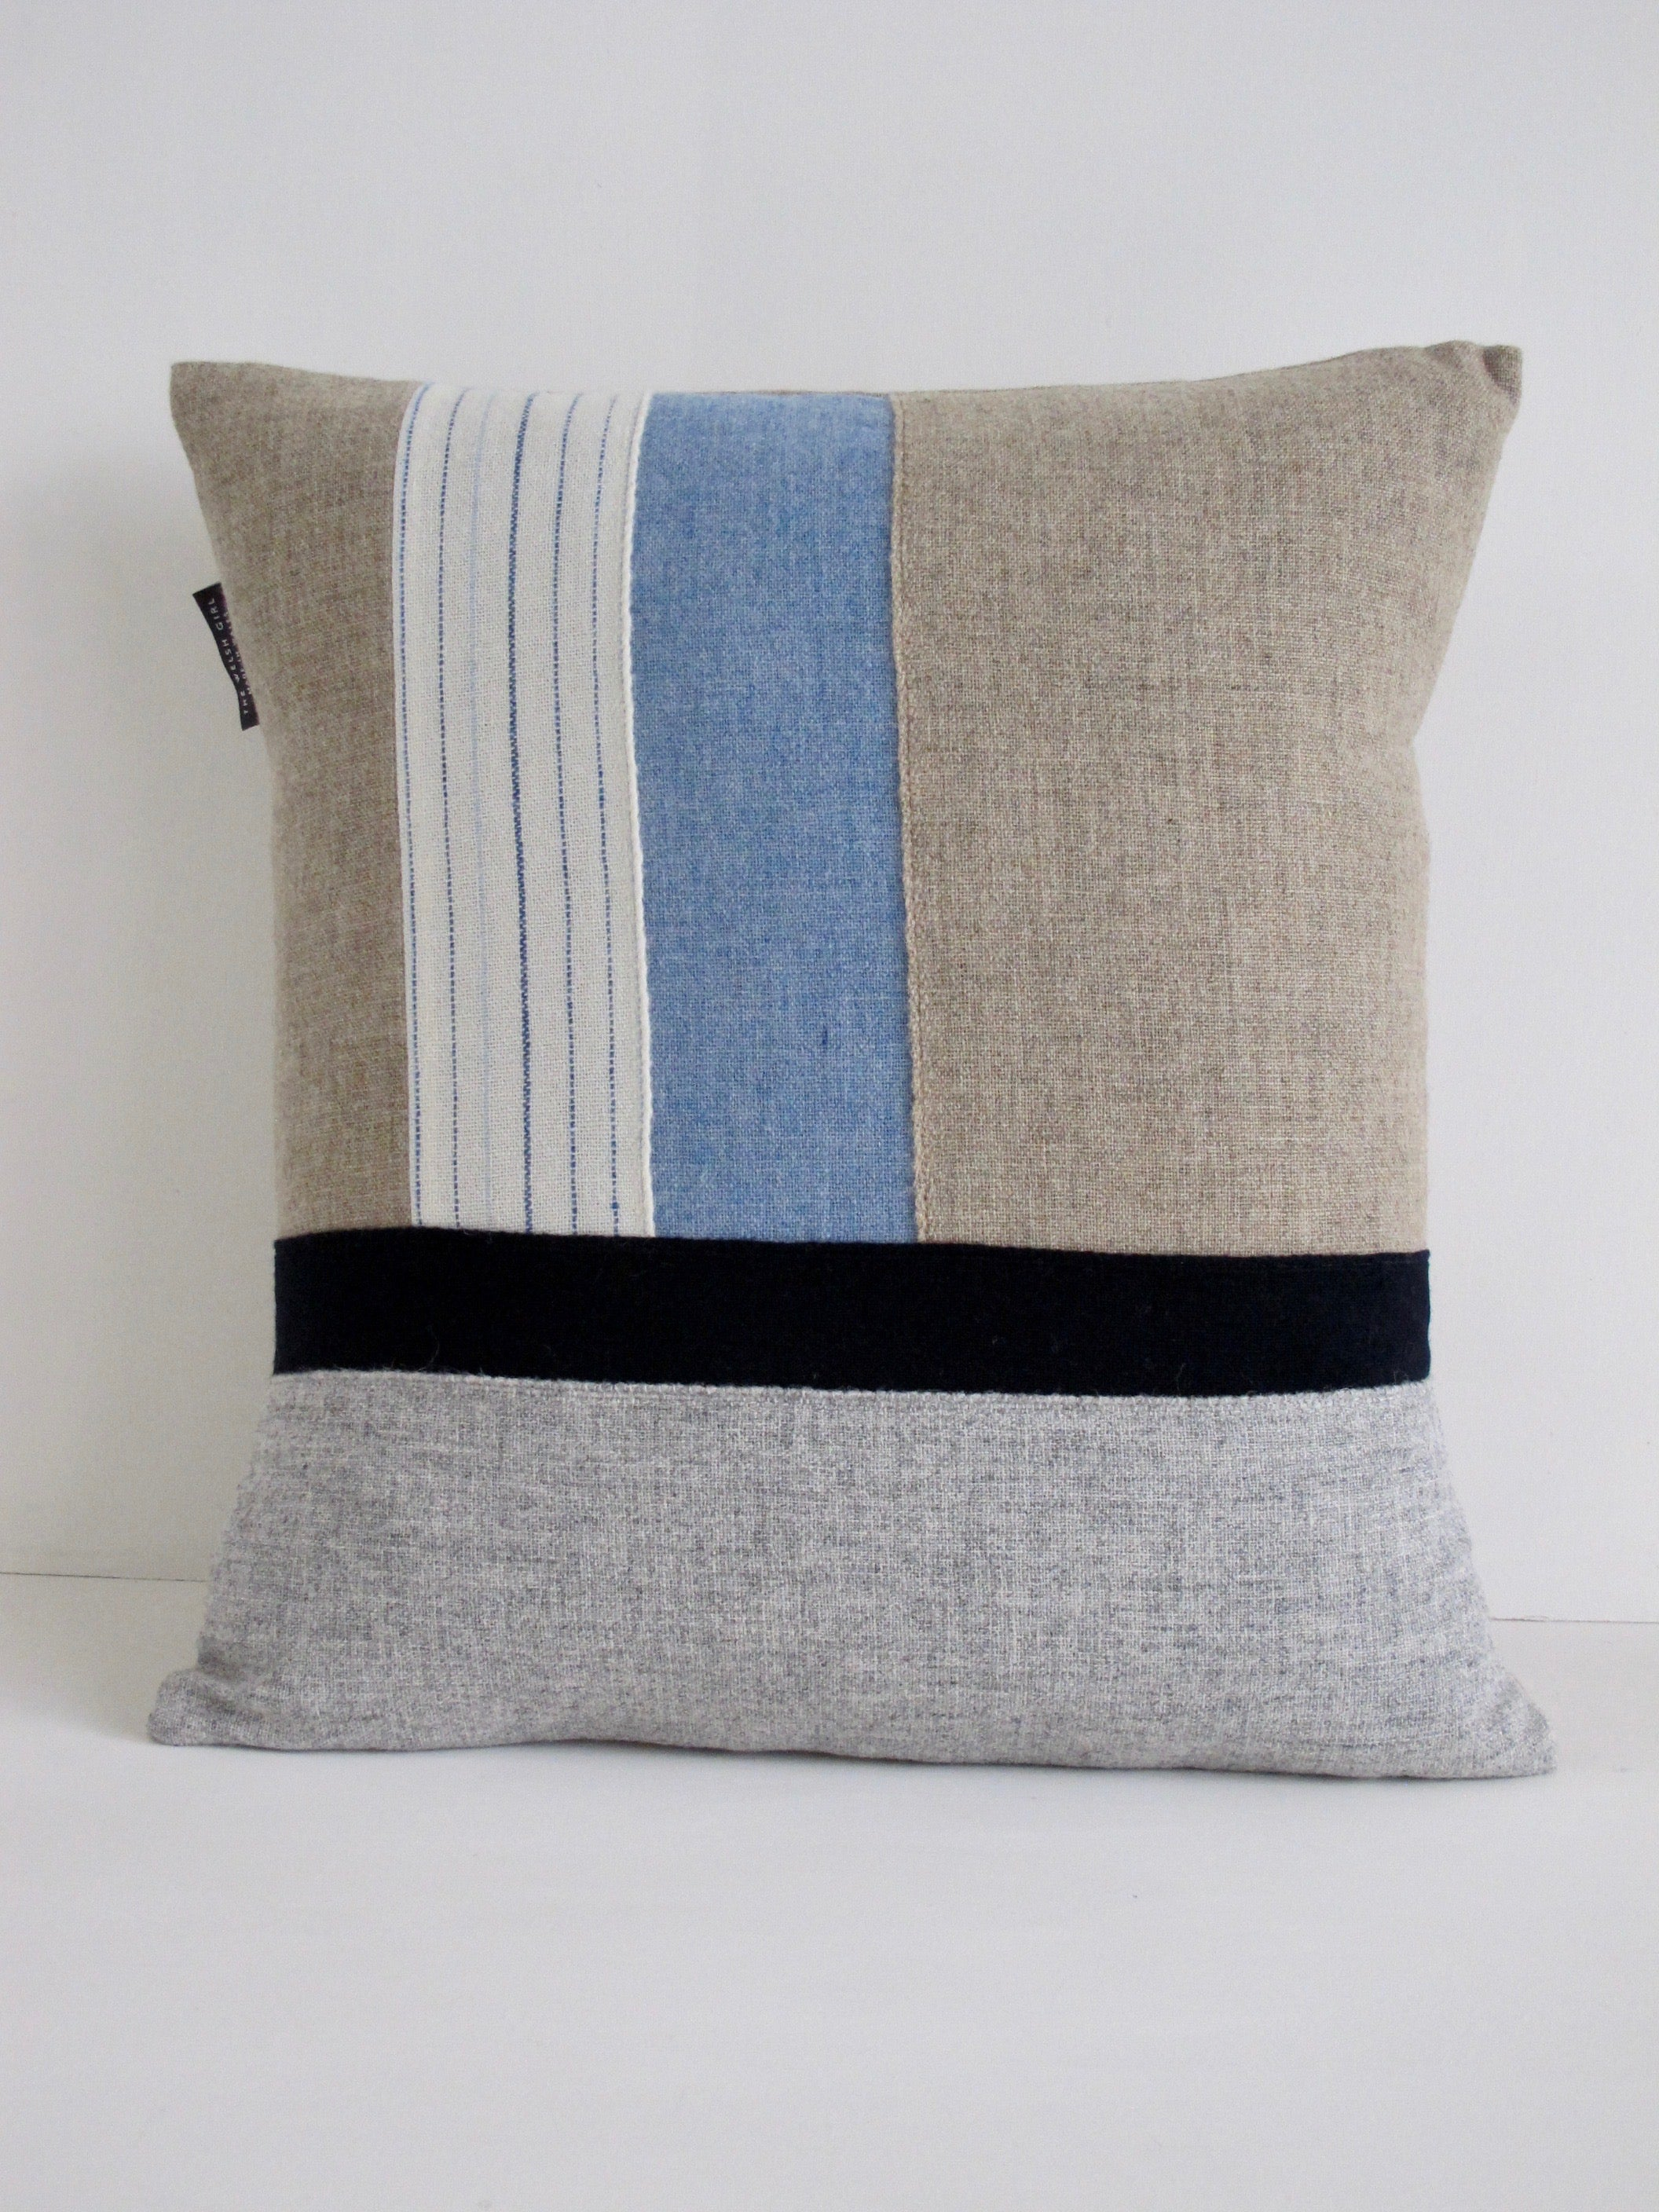 Patchwork Cushion LXIII